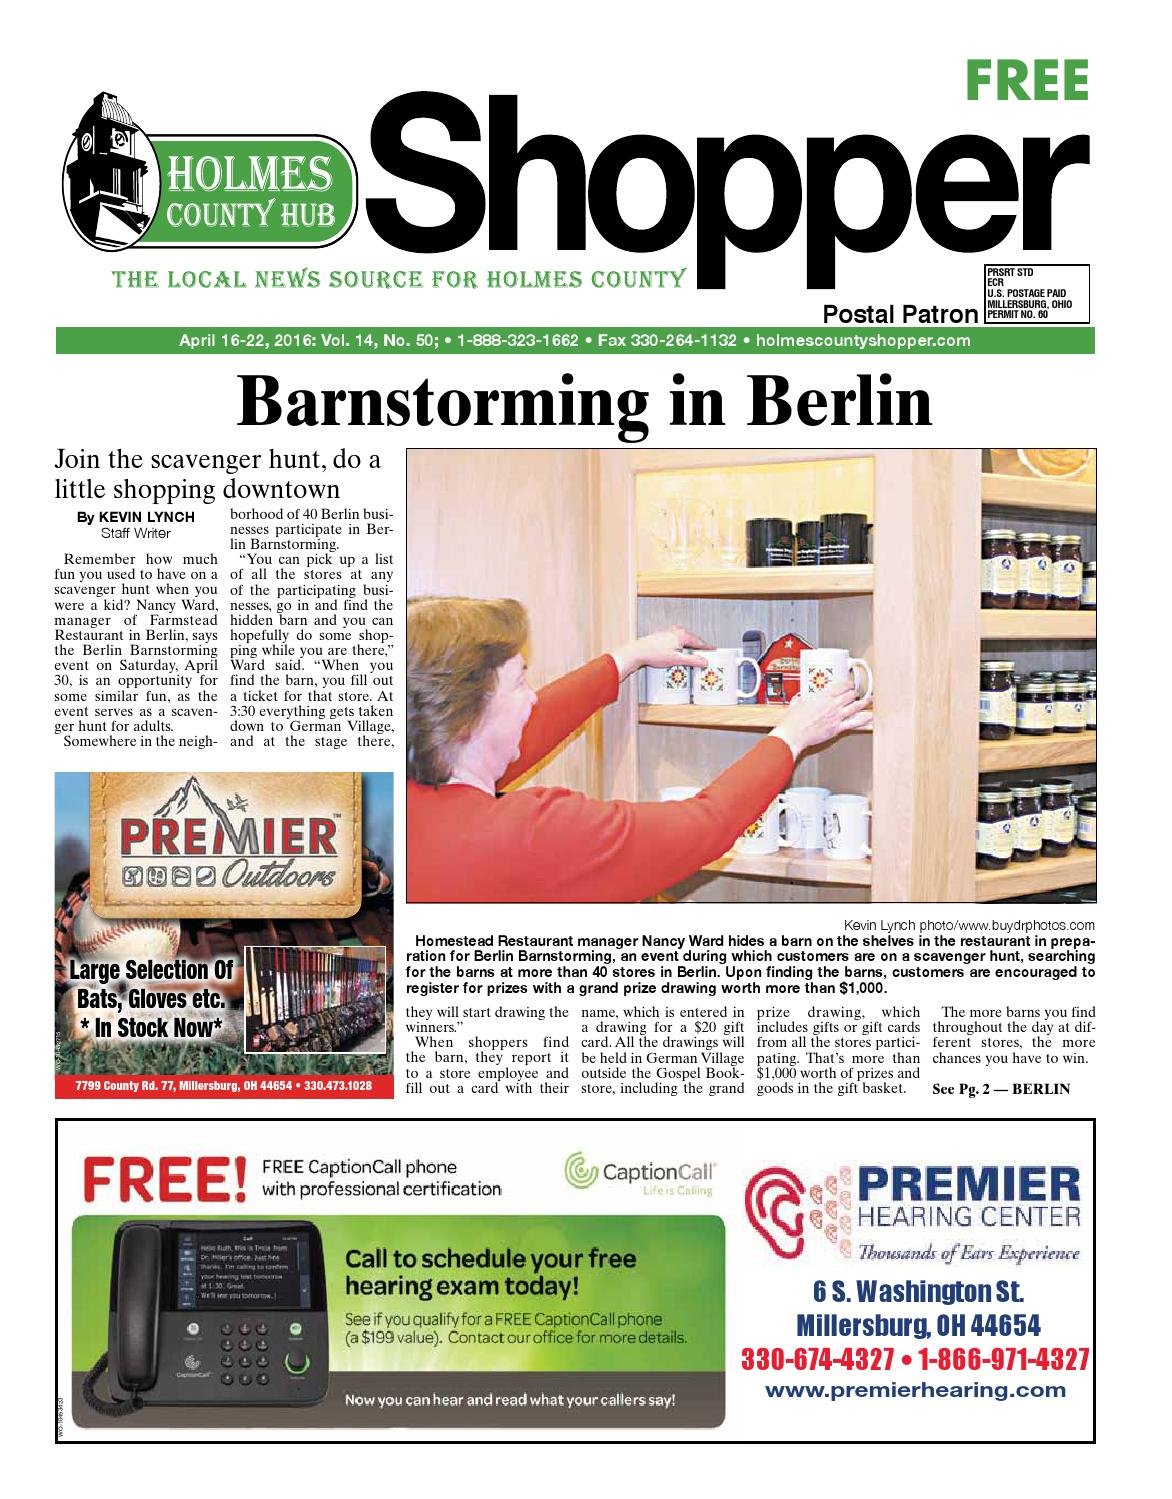 Holmes County Hub Shopper April 16 2016 By Gannett NEO Issuu